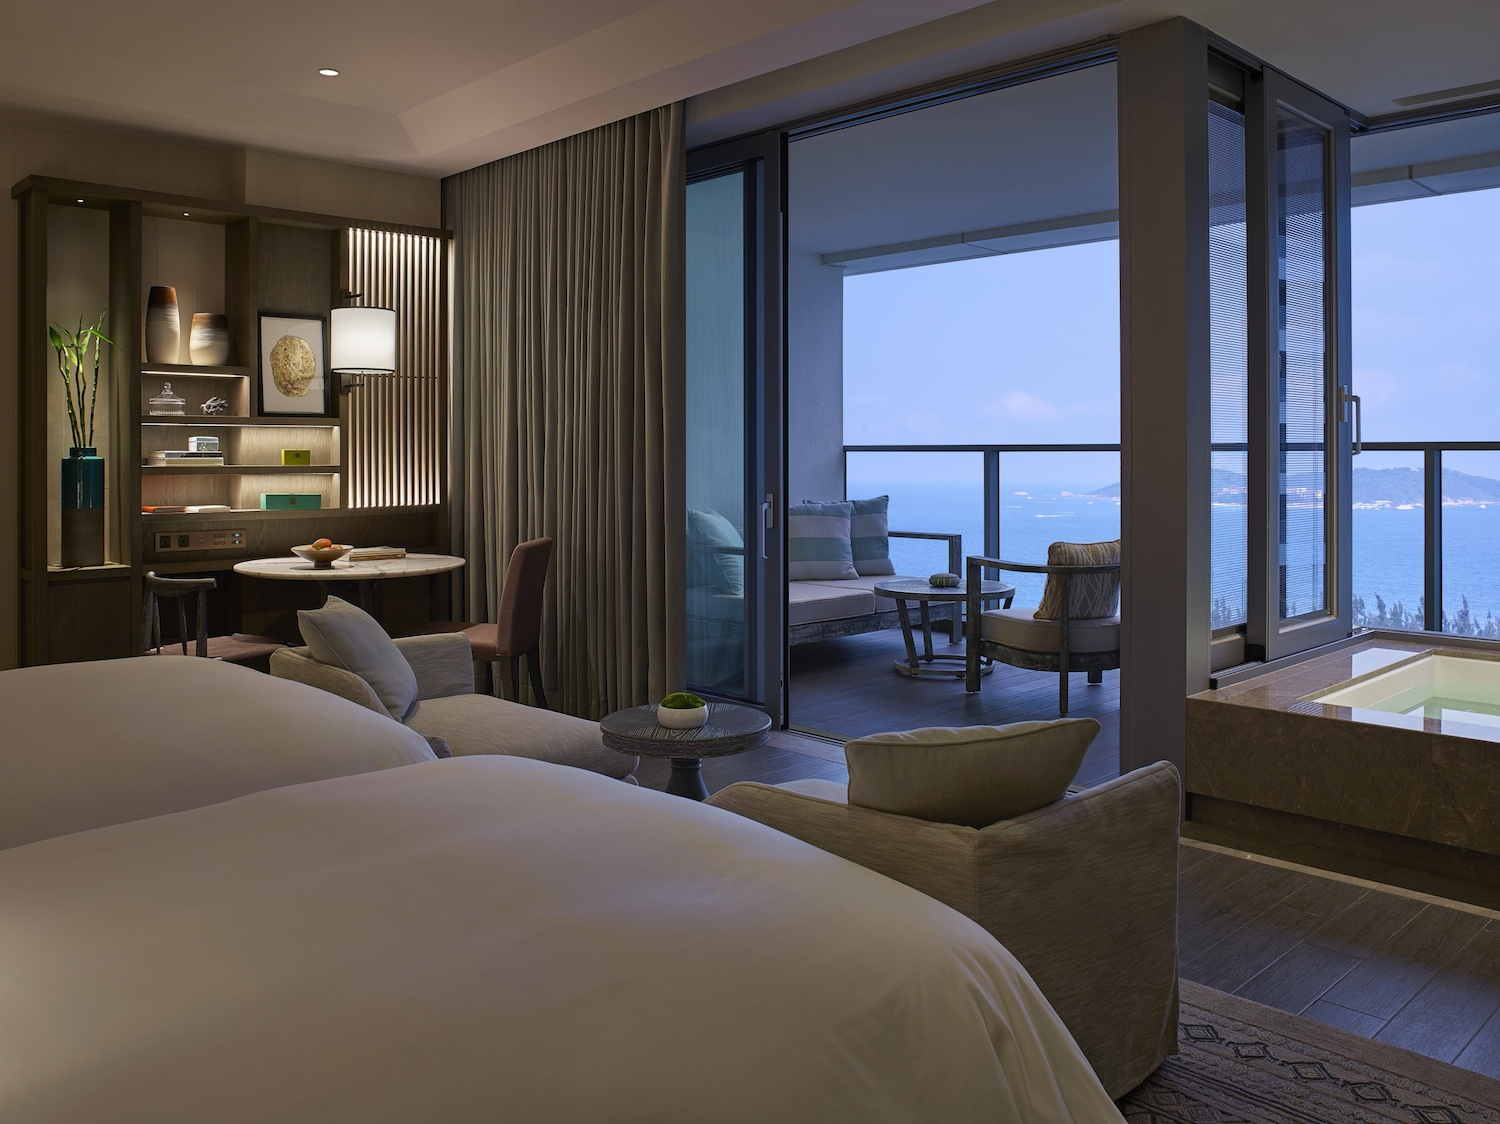 A peek into the Seascape Ocean View Room.